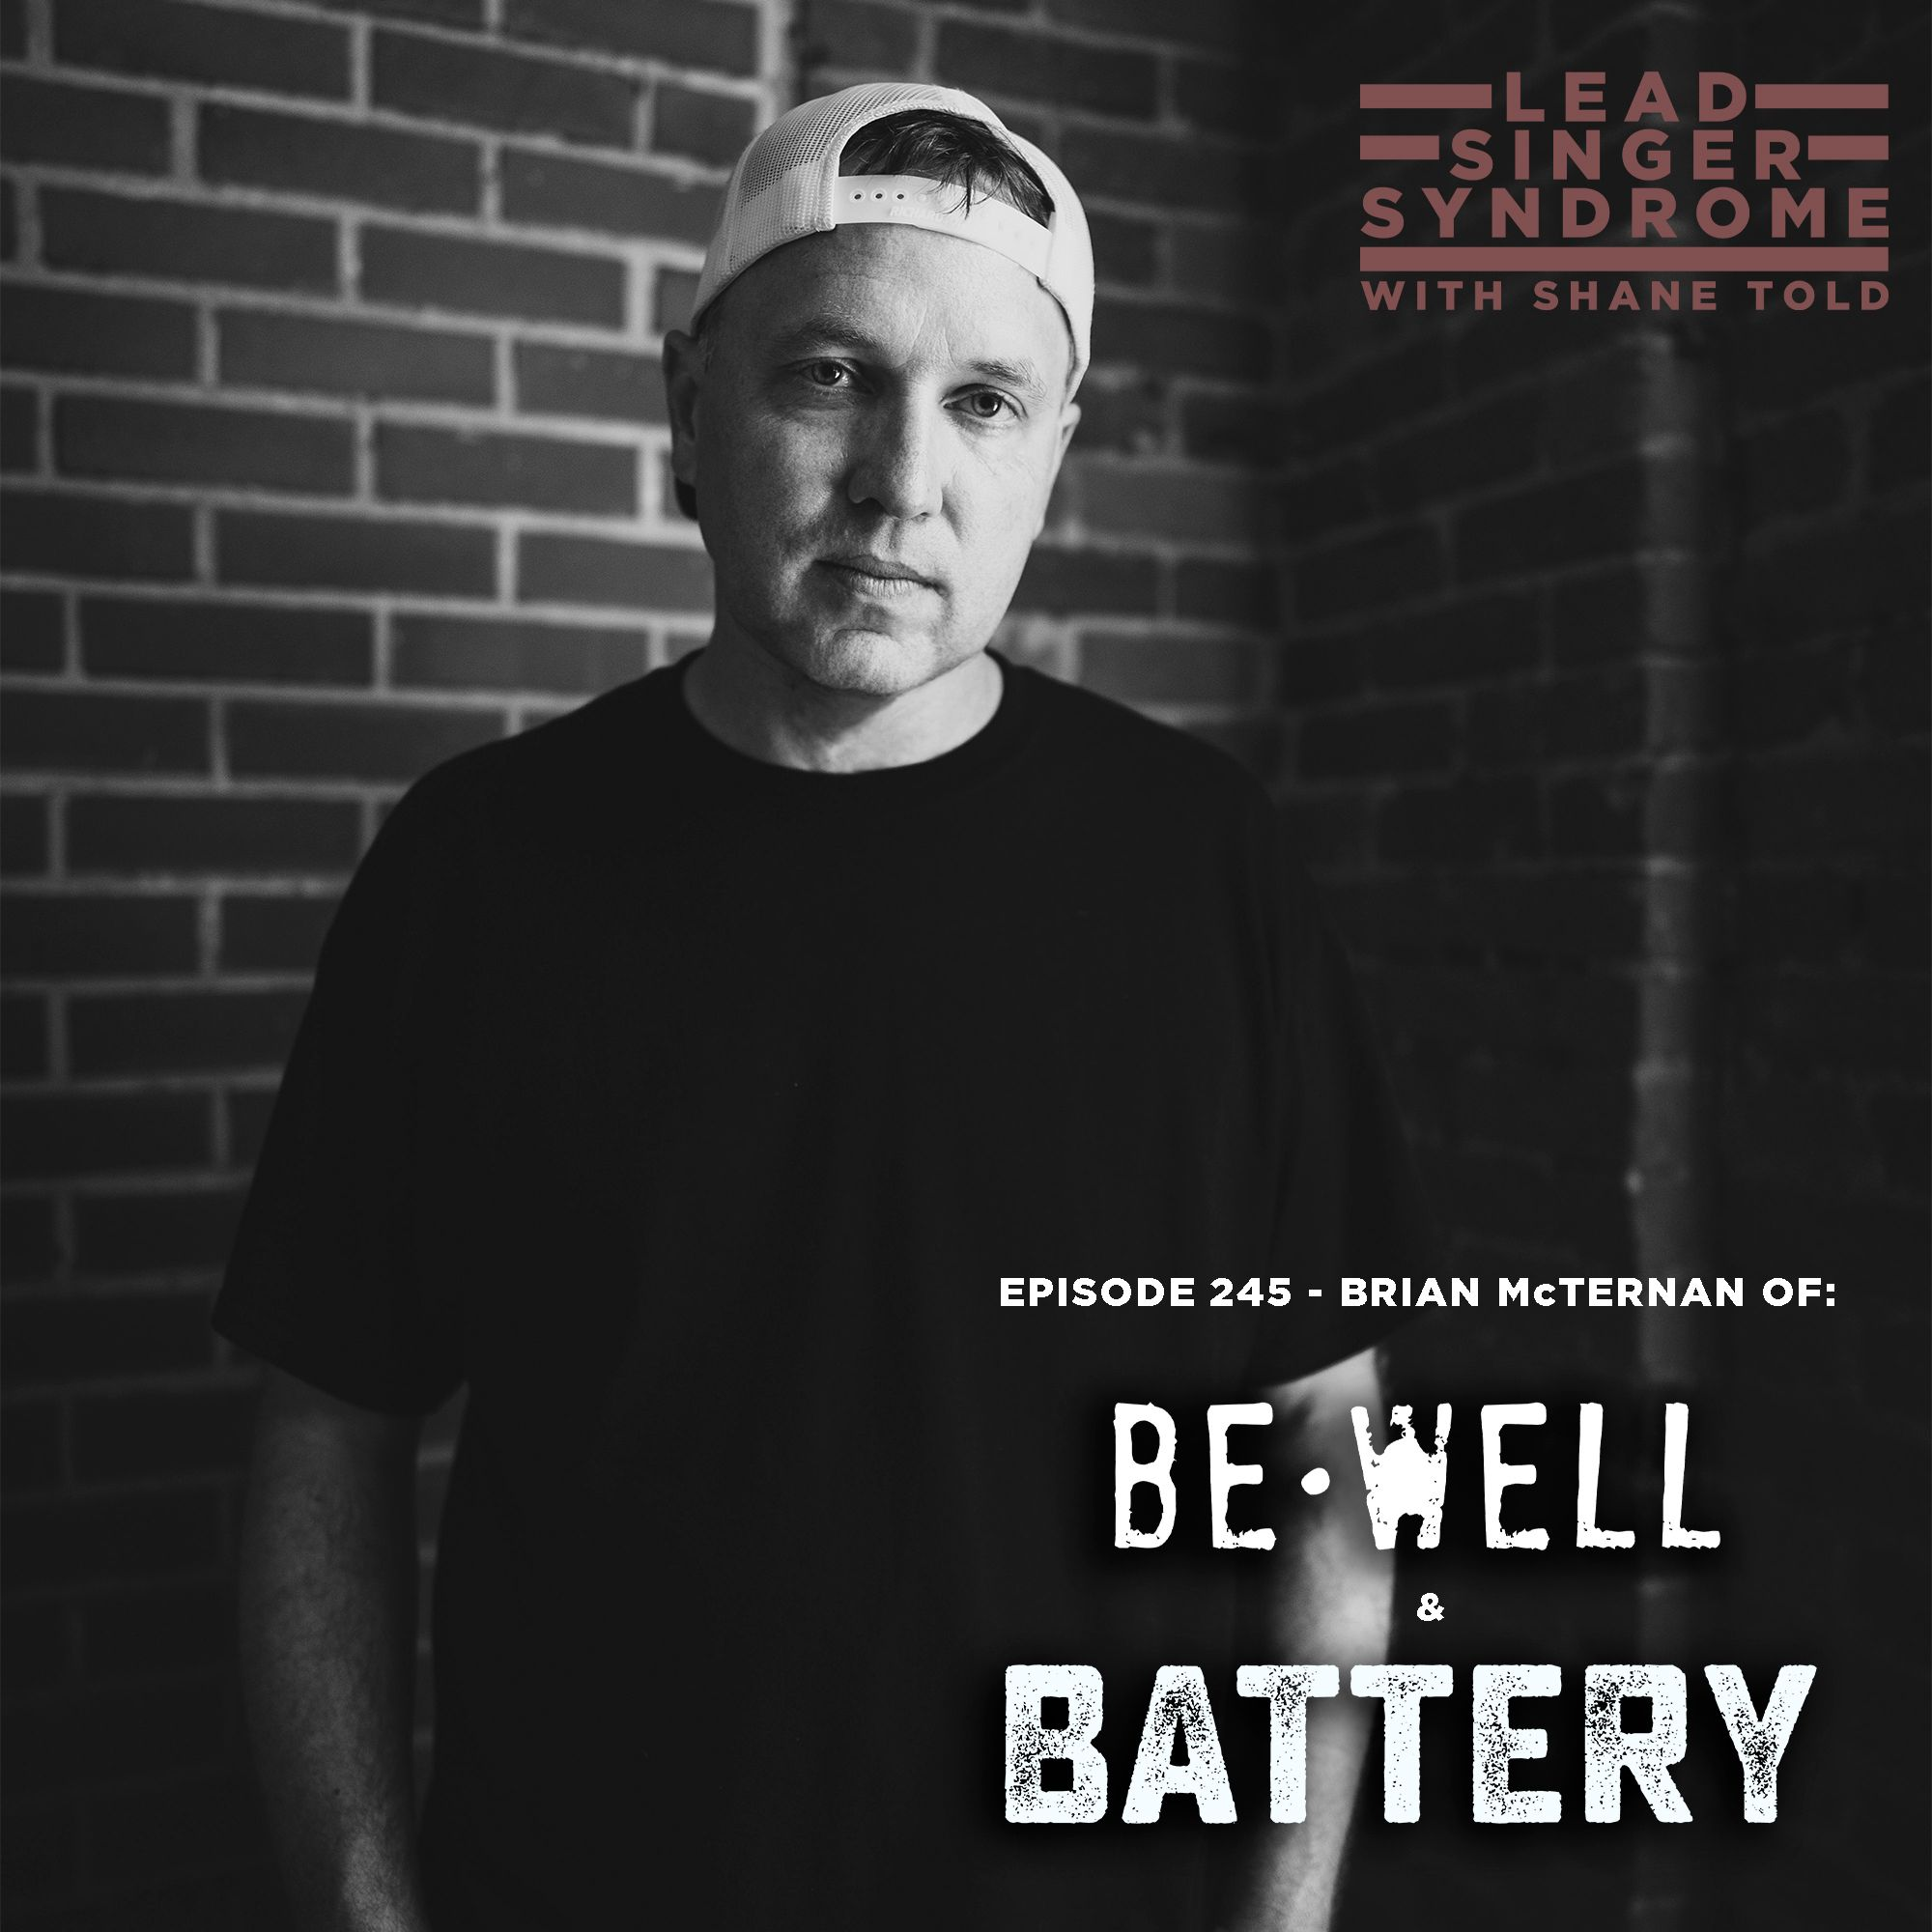 Brian McTernan (Record Producer and vocalist for Be Well and Battery)